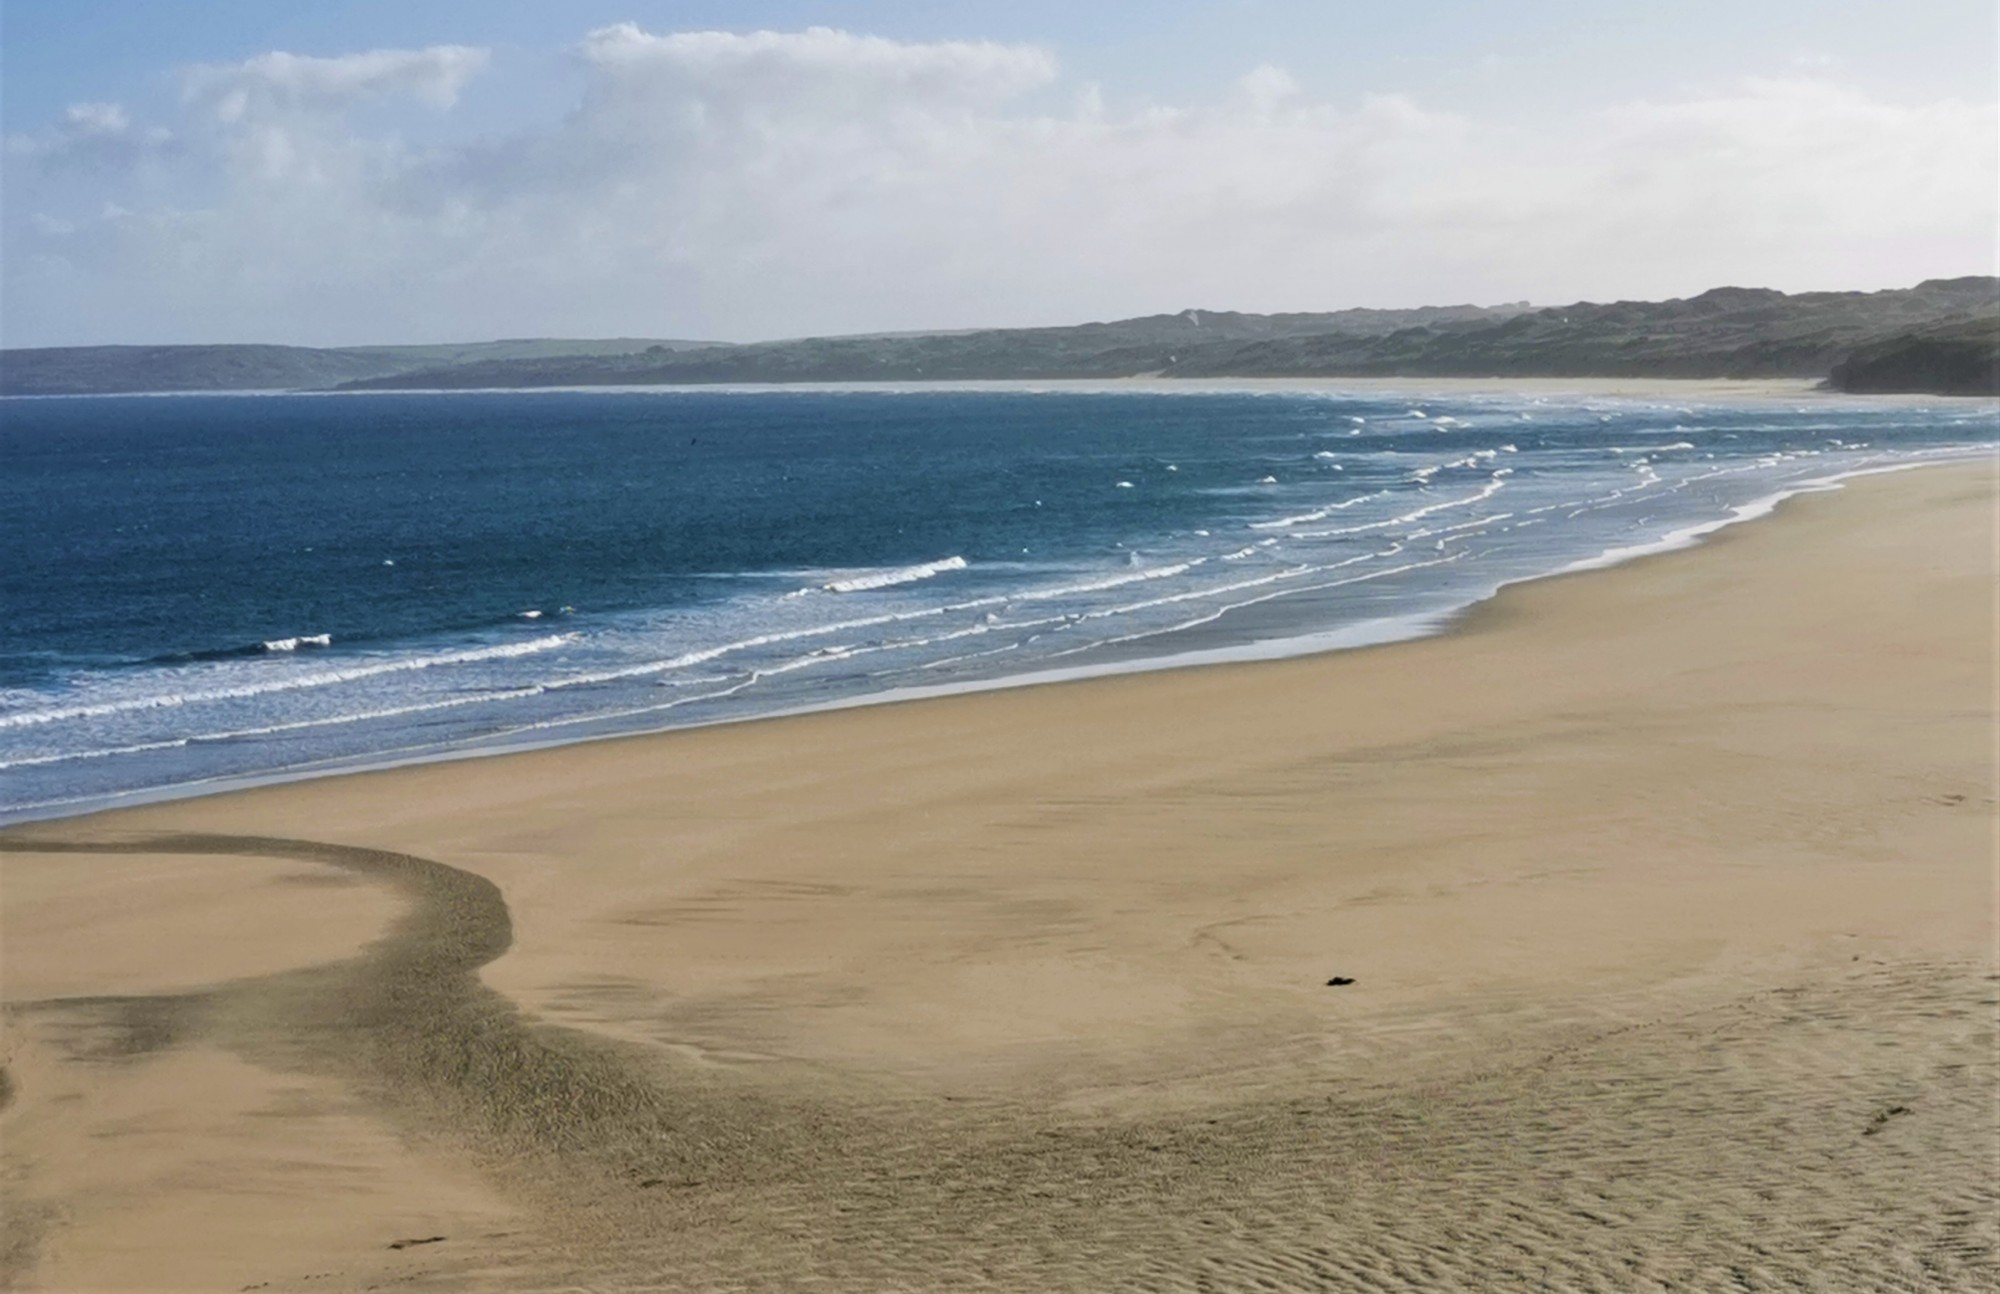 Porthkidney beach and Hayle River Mouth